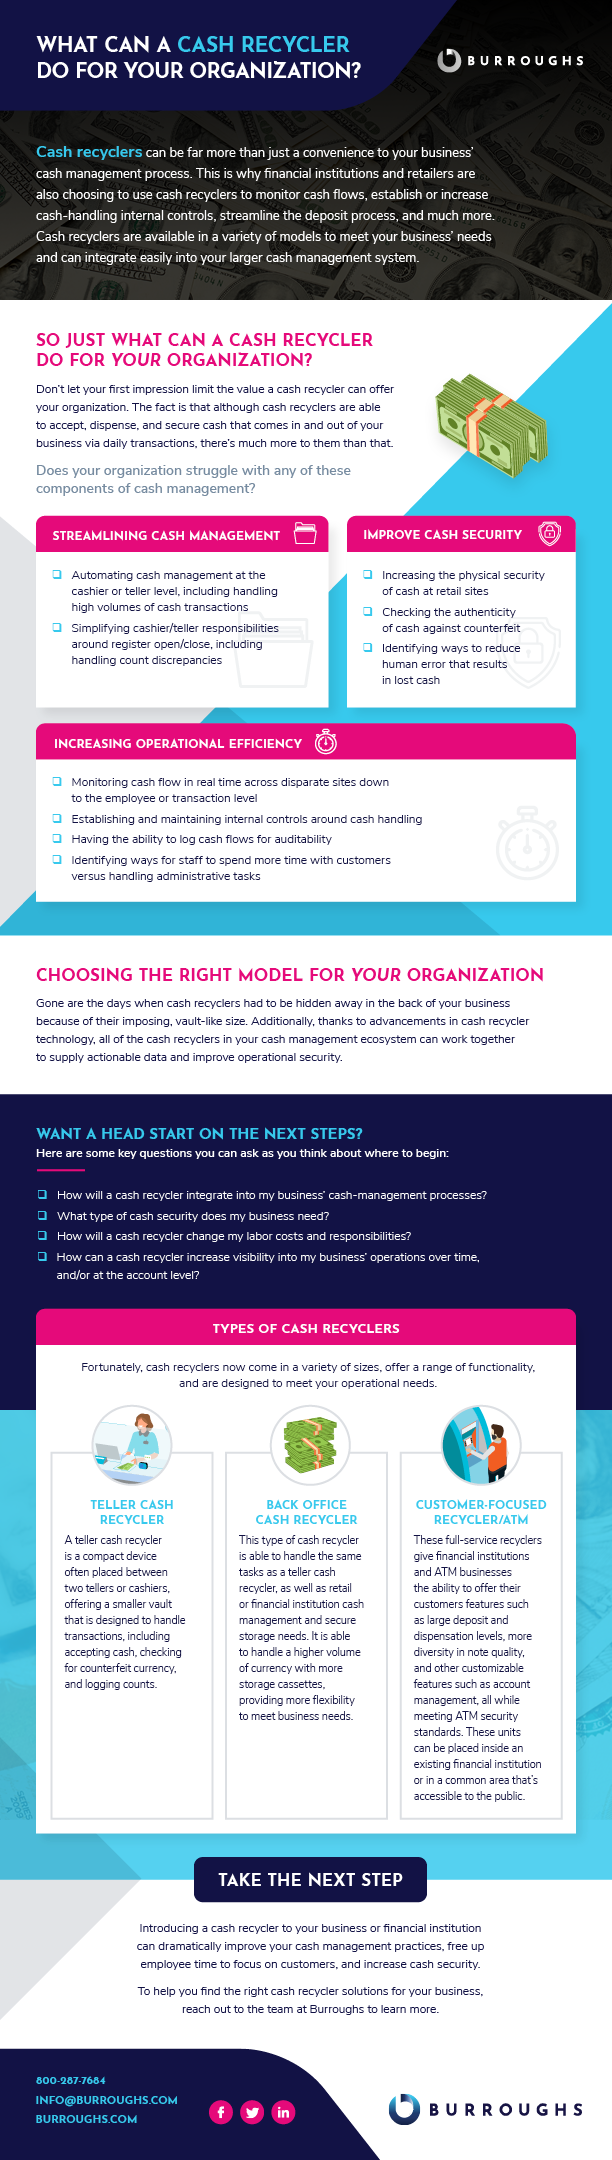 What can a cash recycler do for your organization infographic